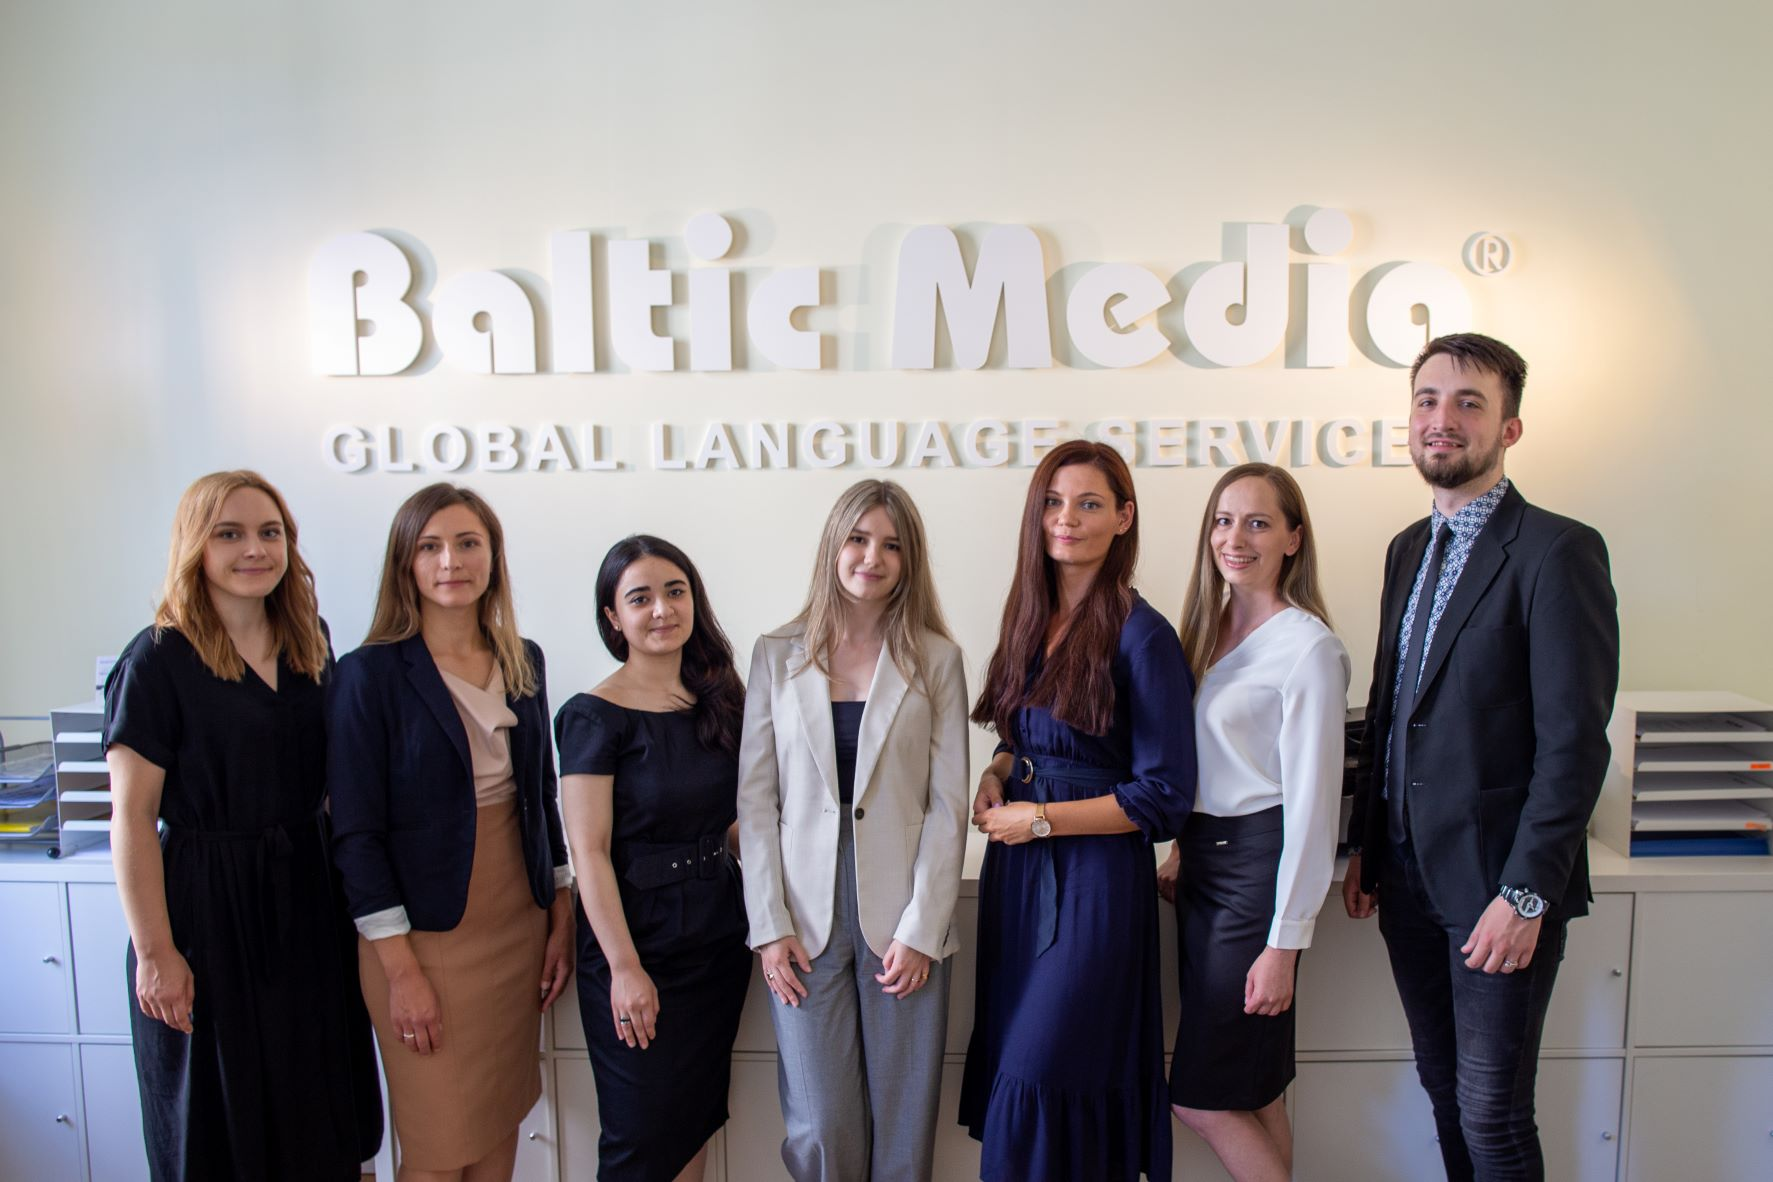 Baltic Media is a leading digital translation and localization company in Northern Europe